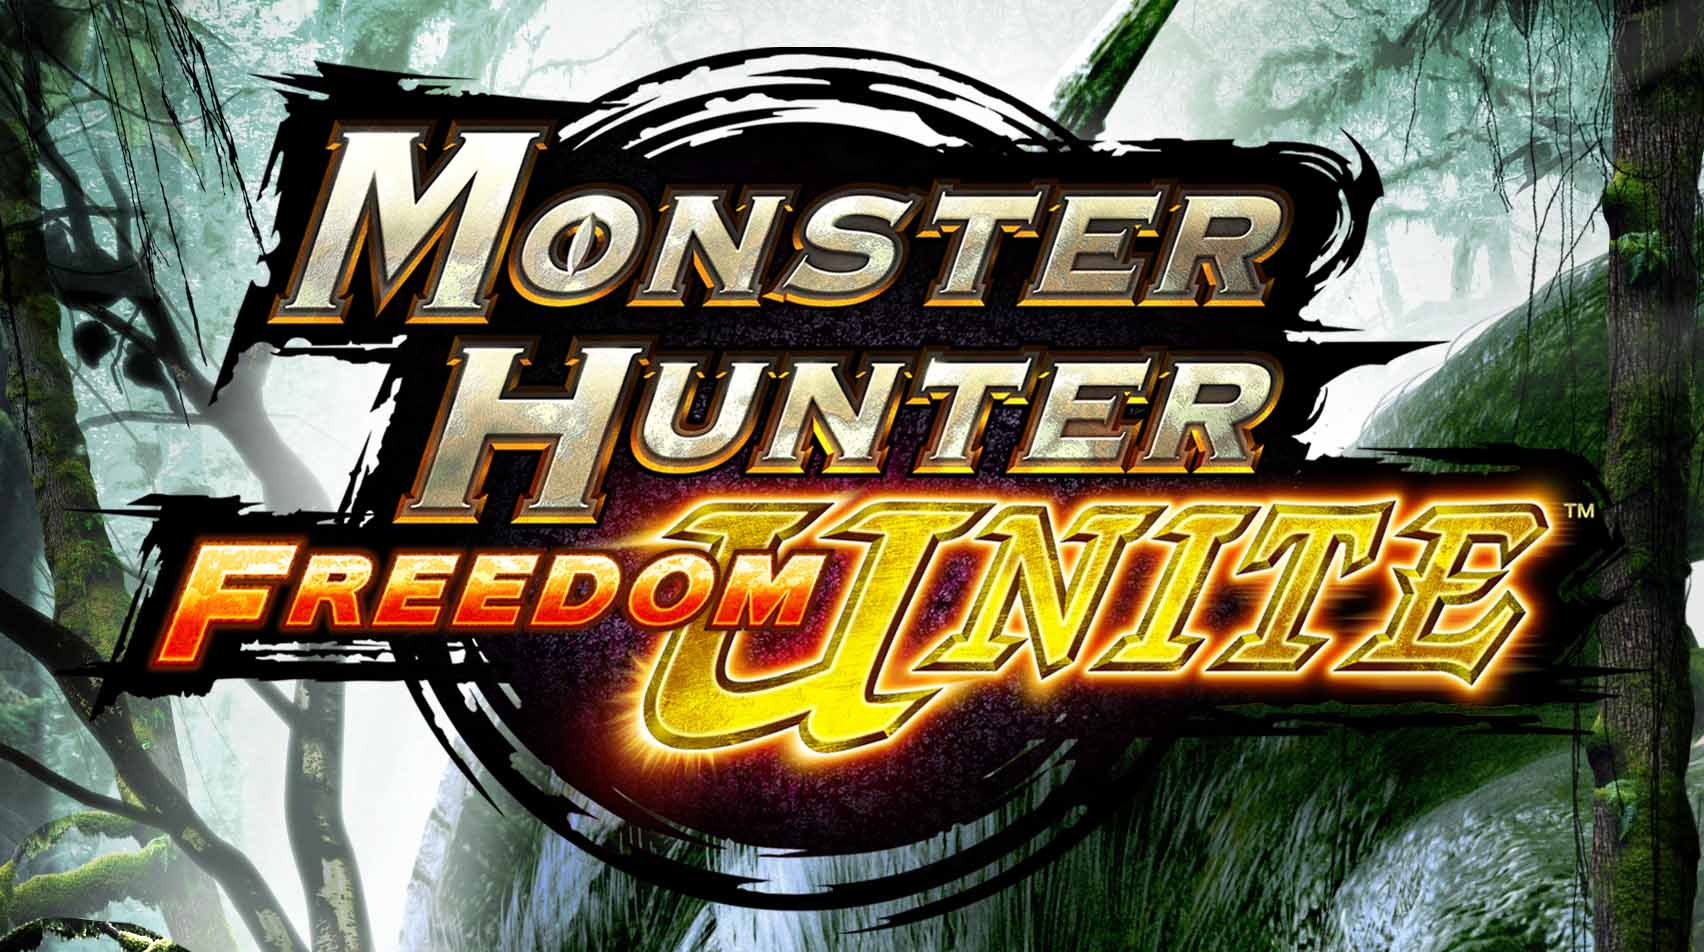 Monster Hunter Freedom Unite suddenly drops onto the App Store